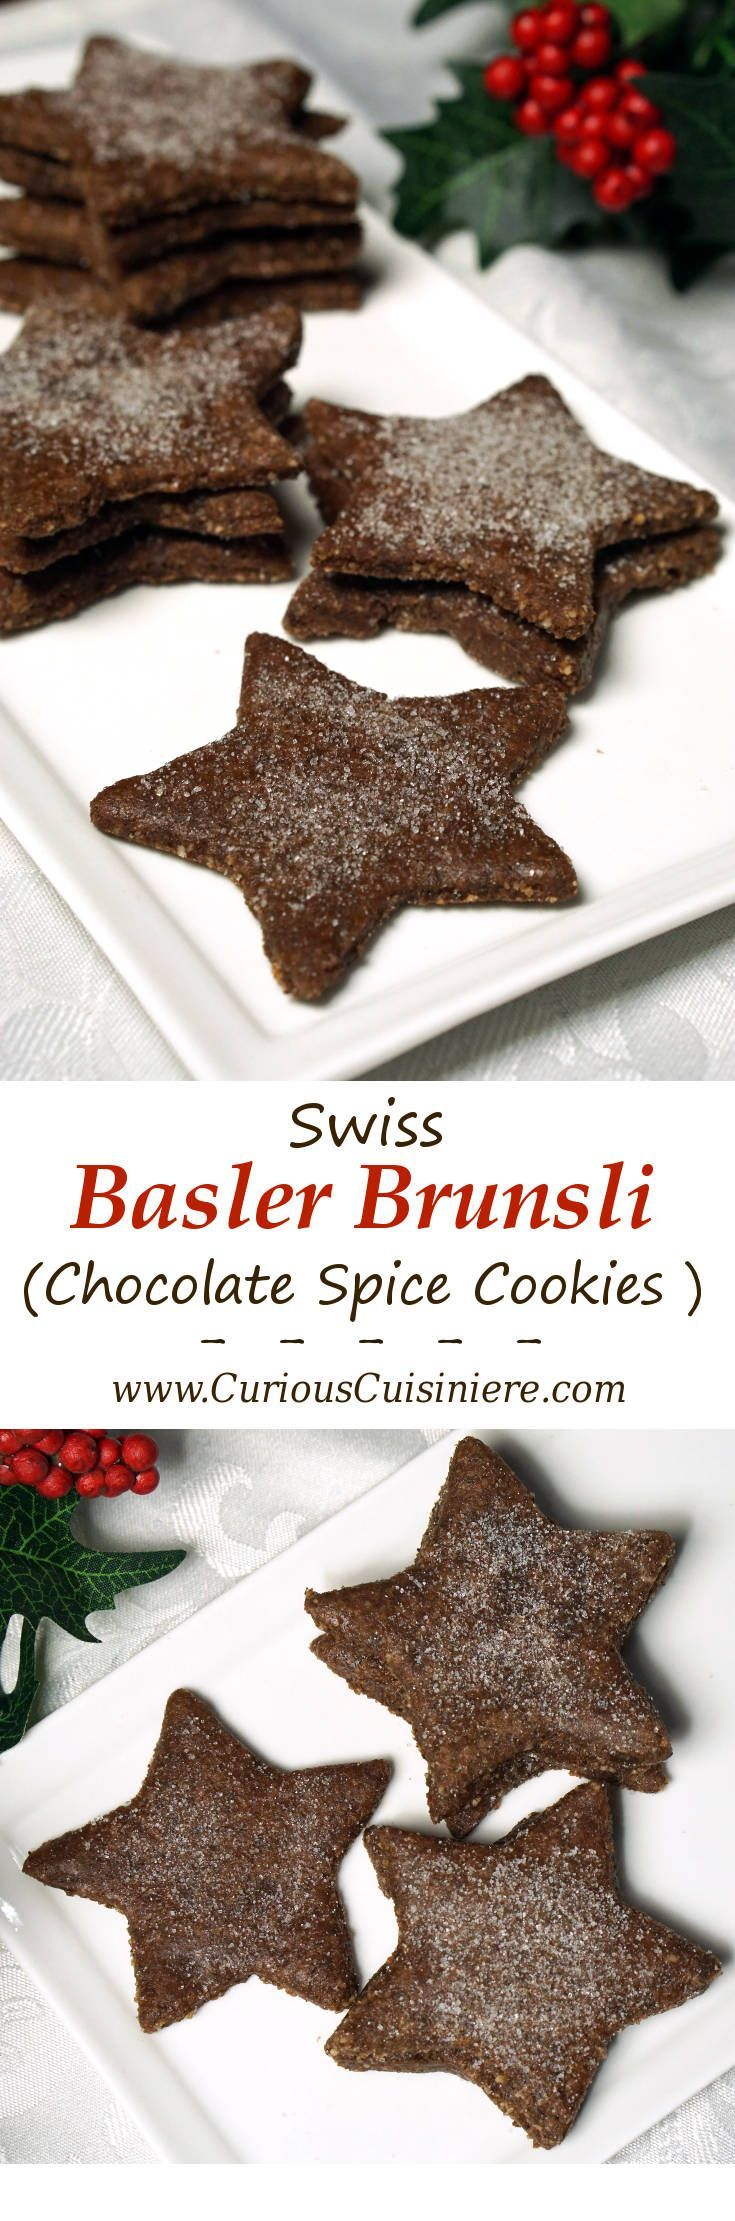 These Gluten Free Swiss Chocolate Almond Flour Cookies Known As